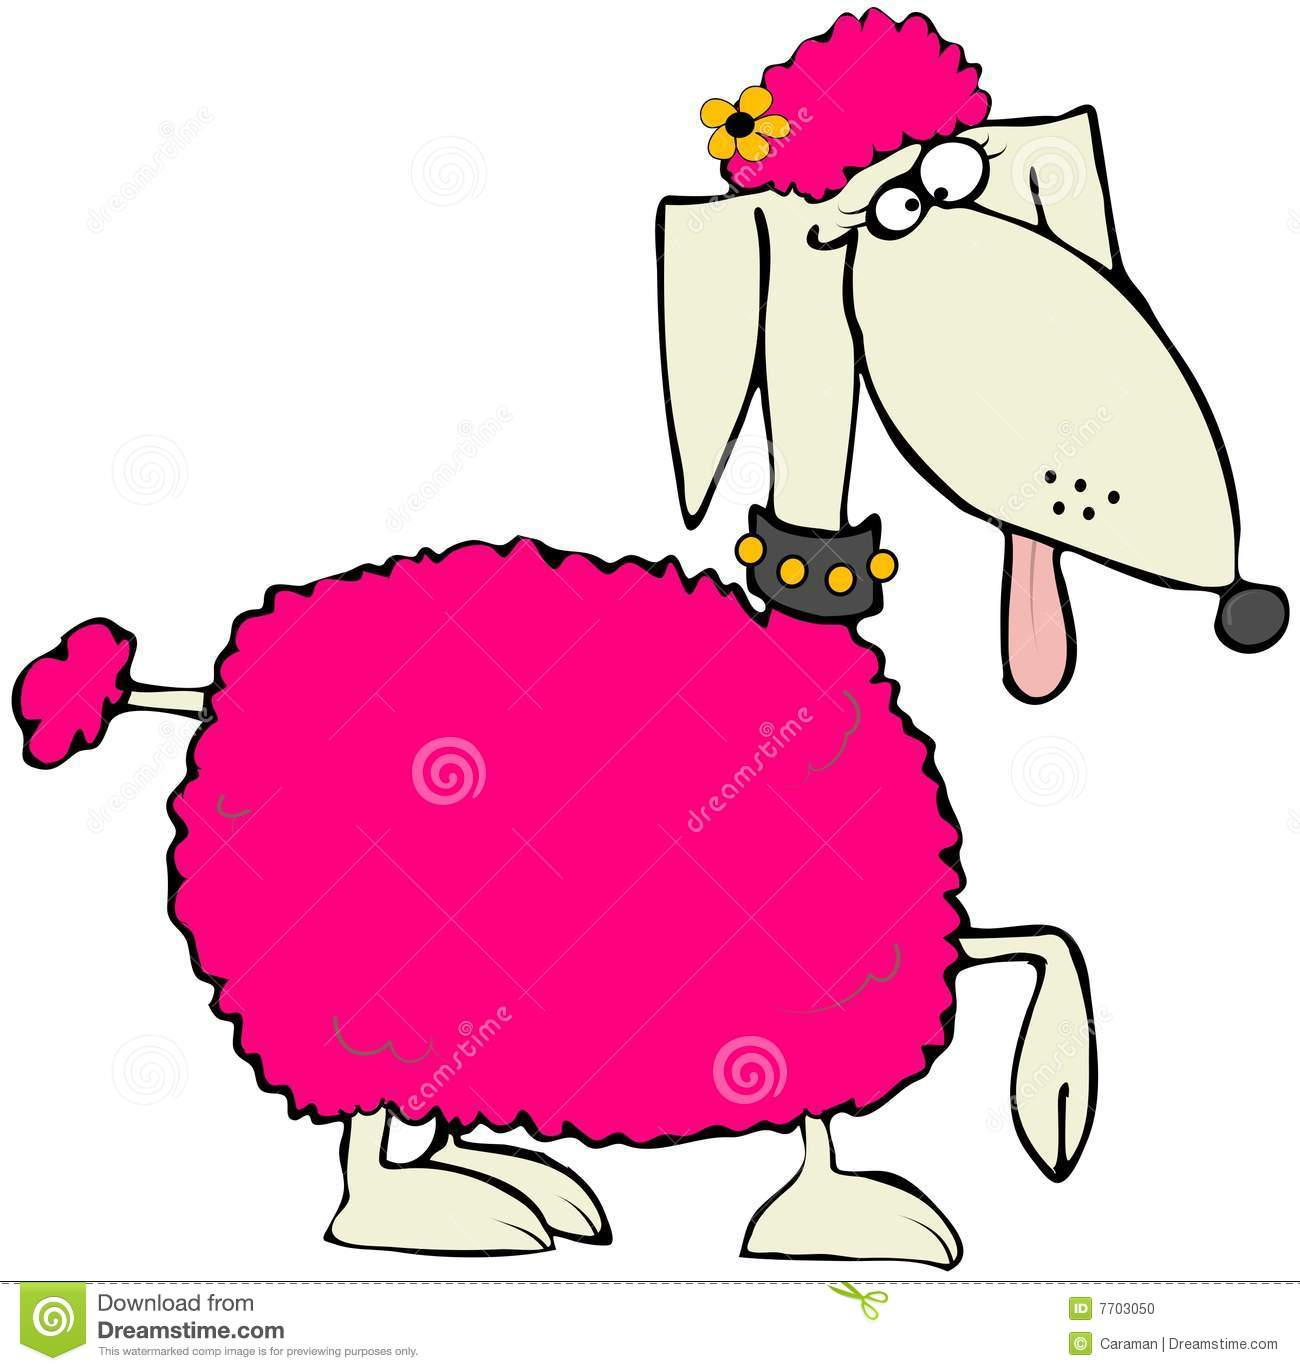 Pink Poodle Stock Photo Image 7703050